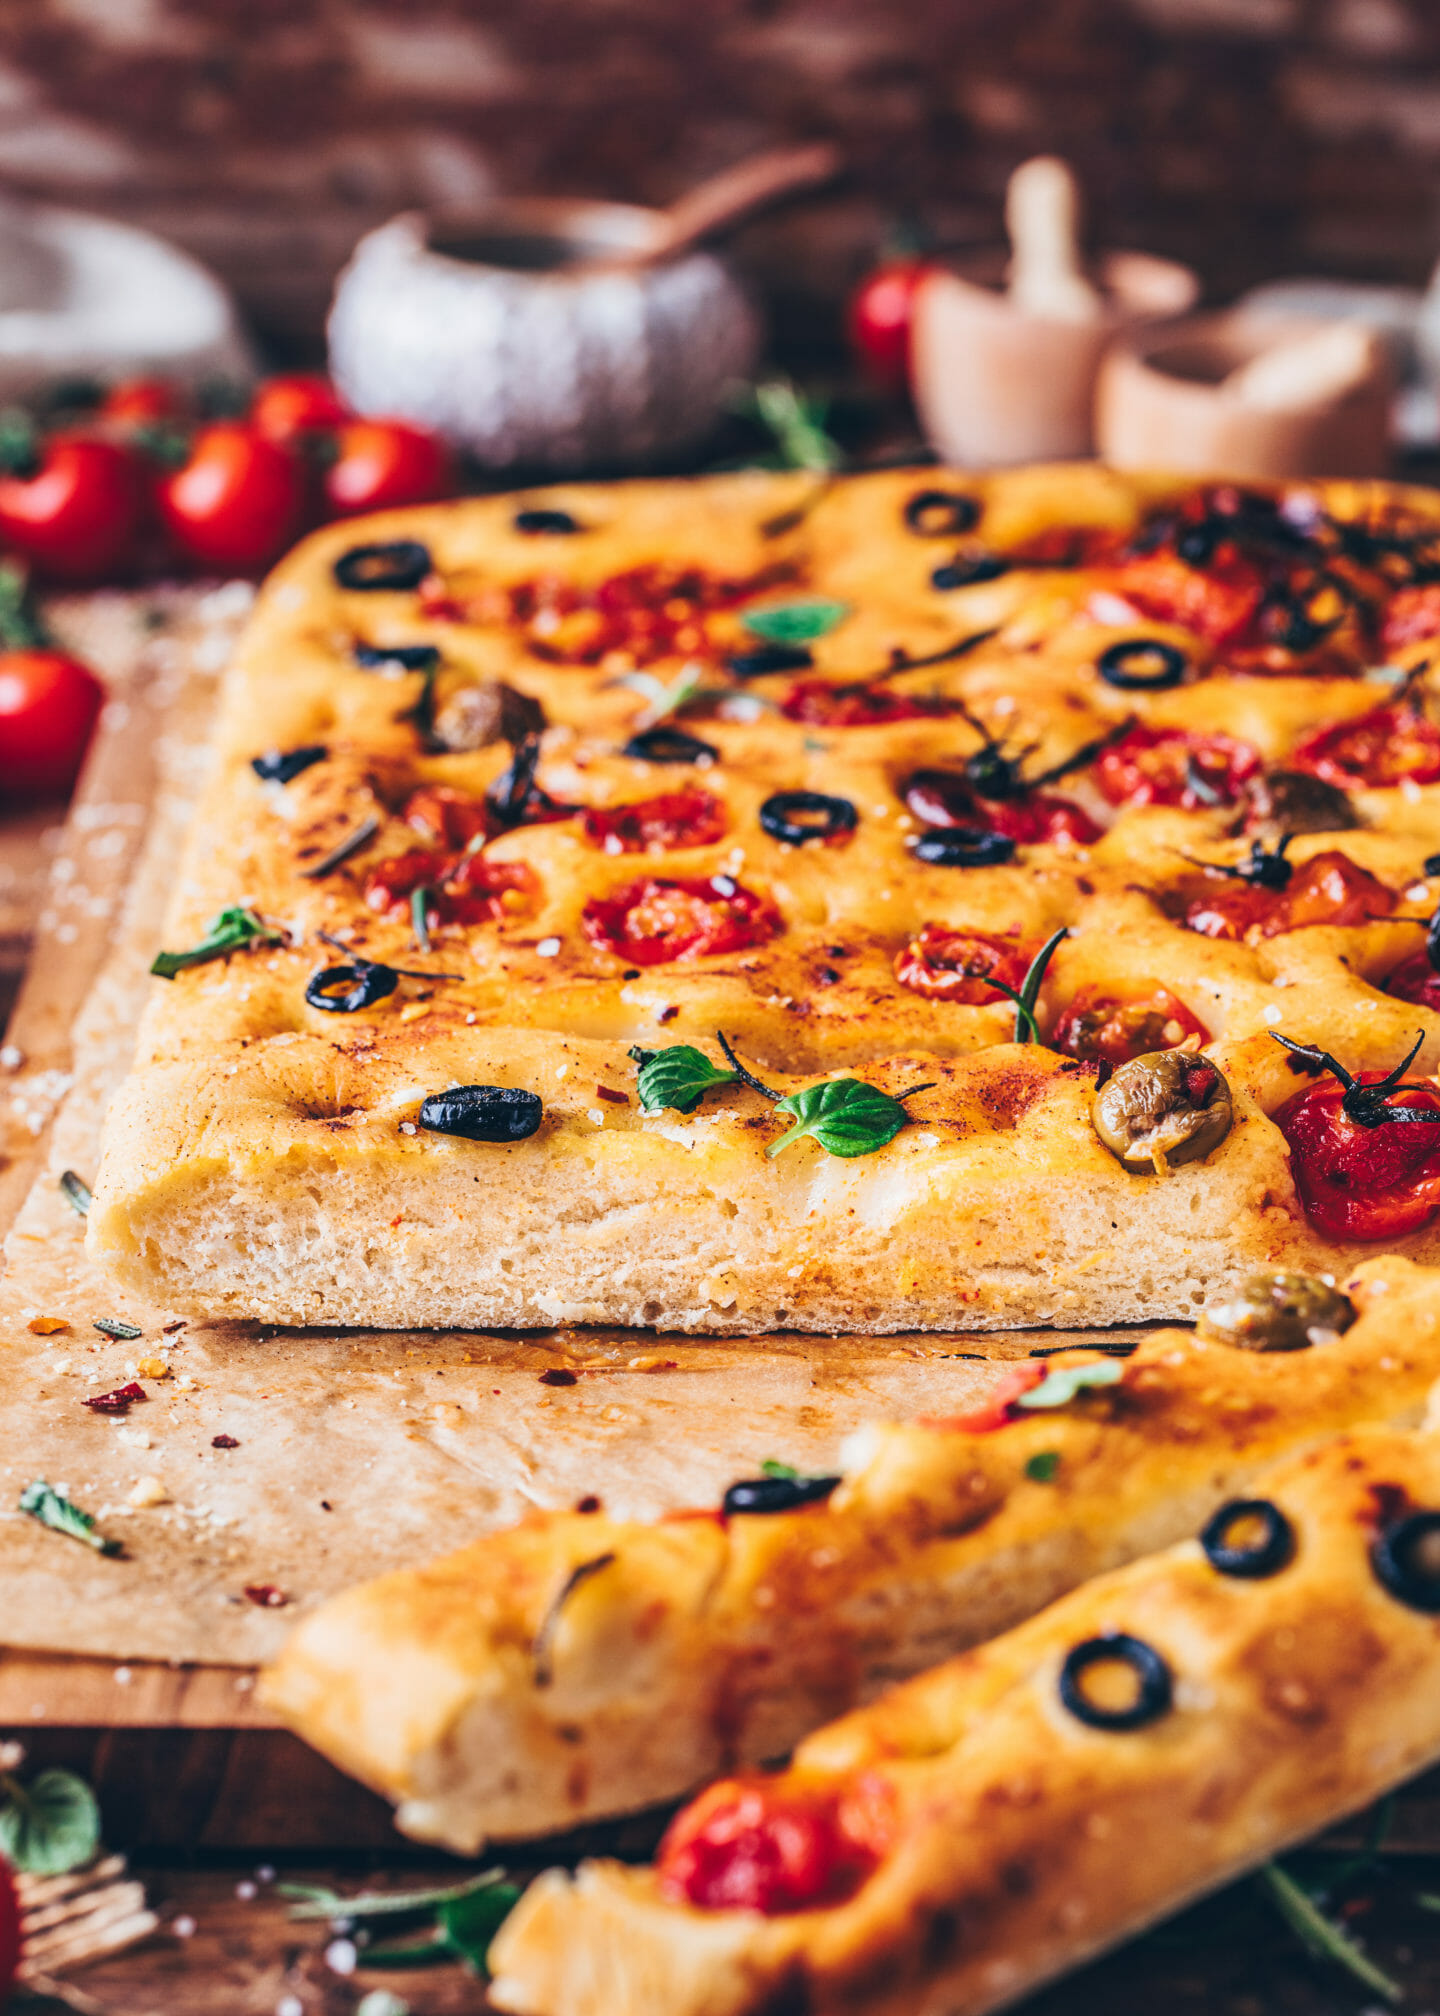 Focaccia with cherry tomatoes, olives, rosemary, and sea salt